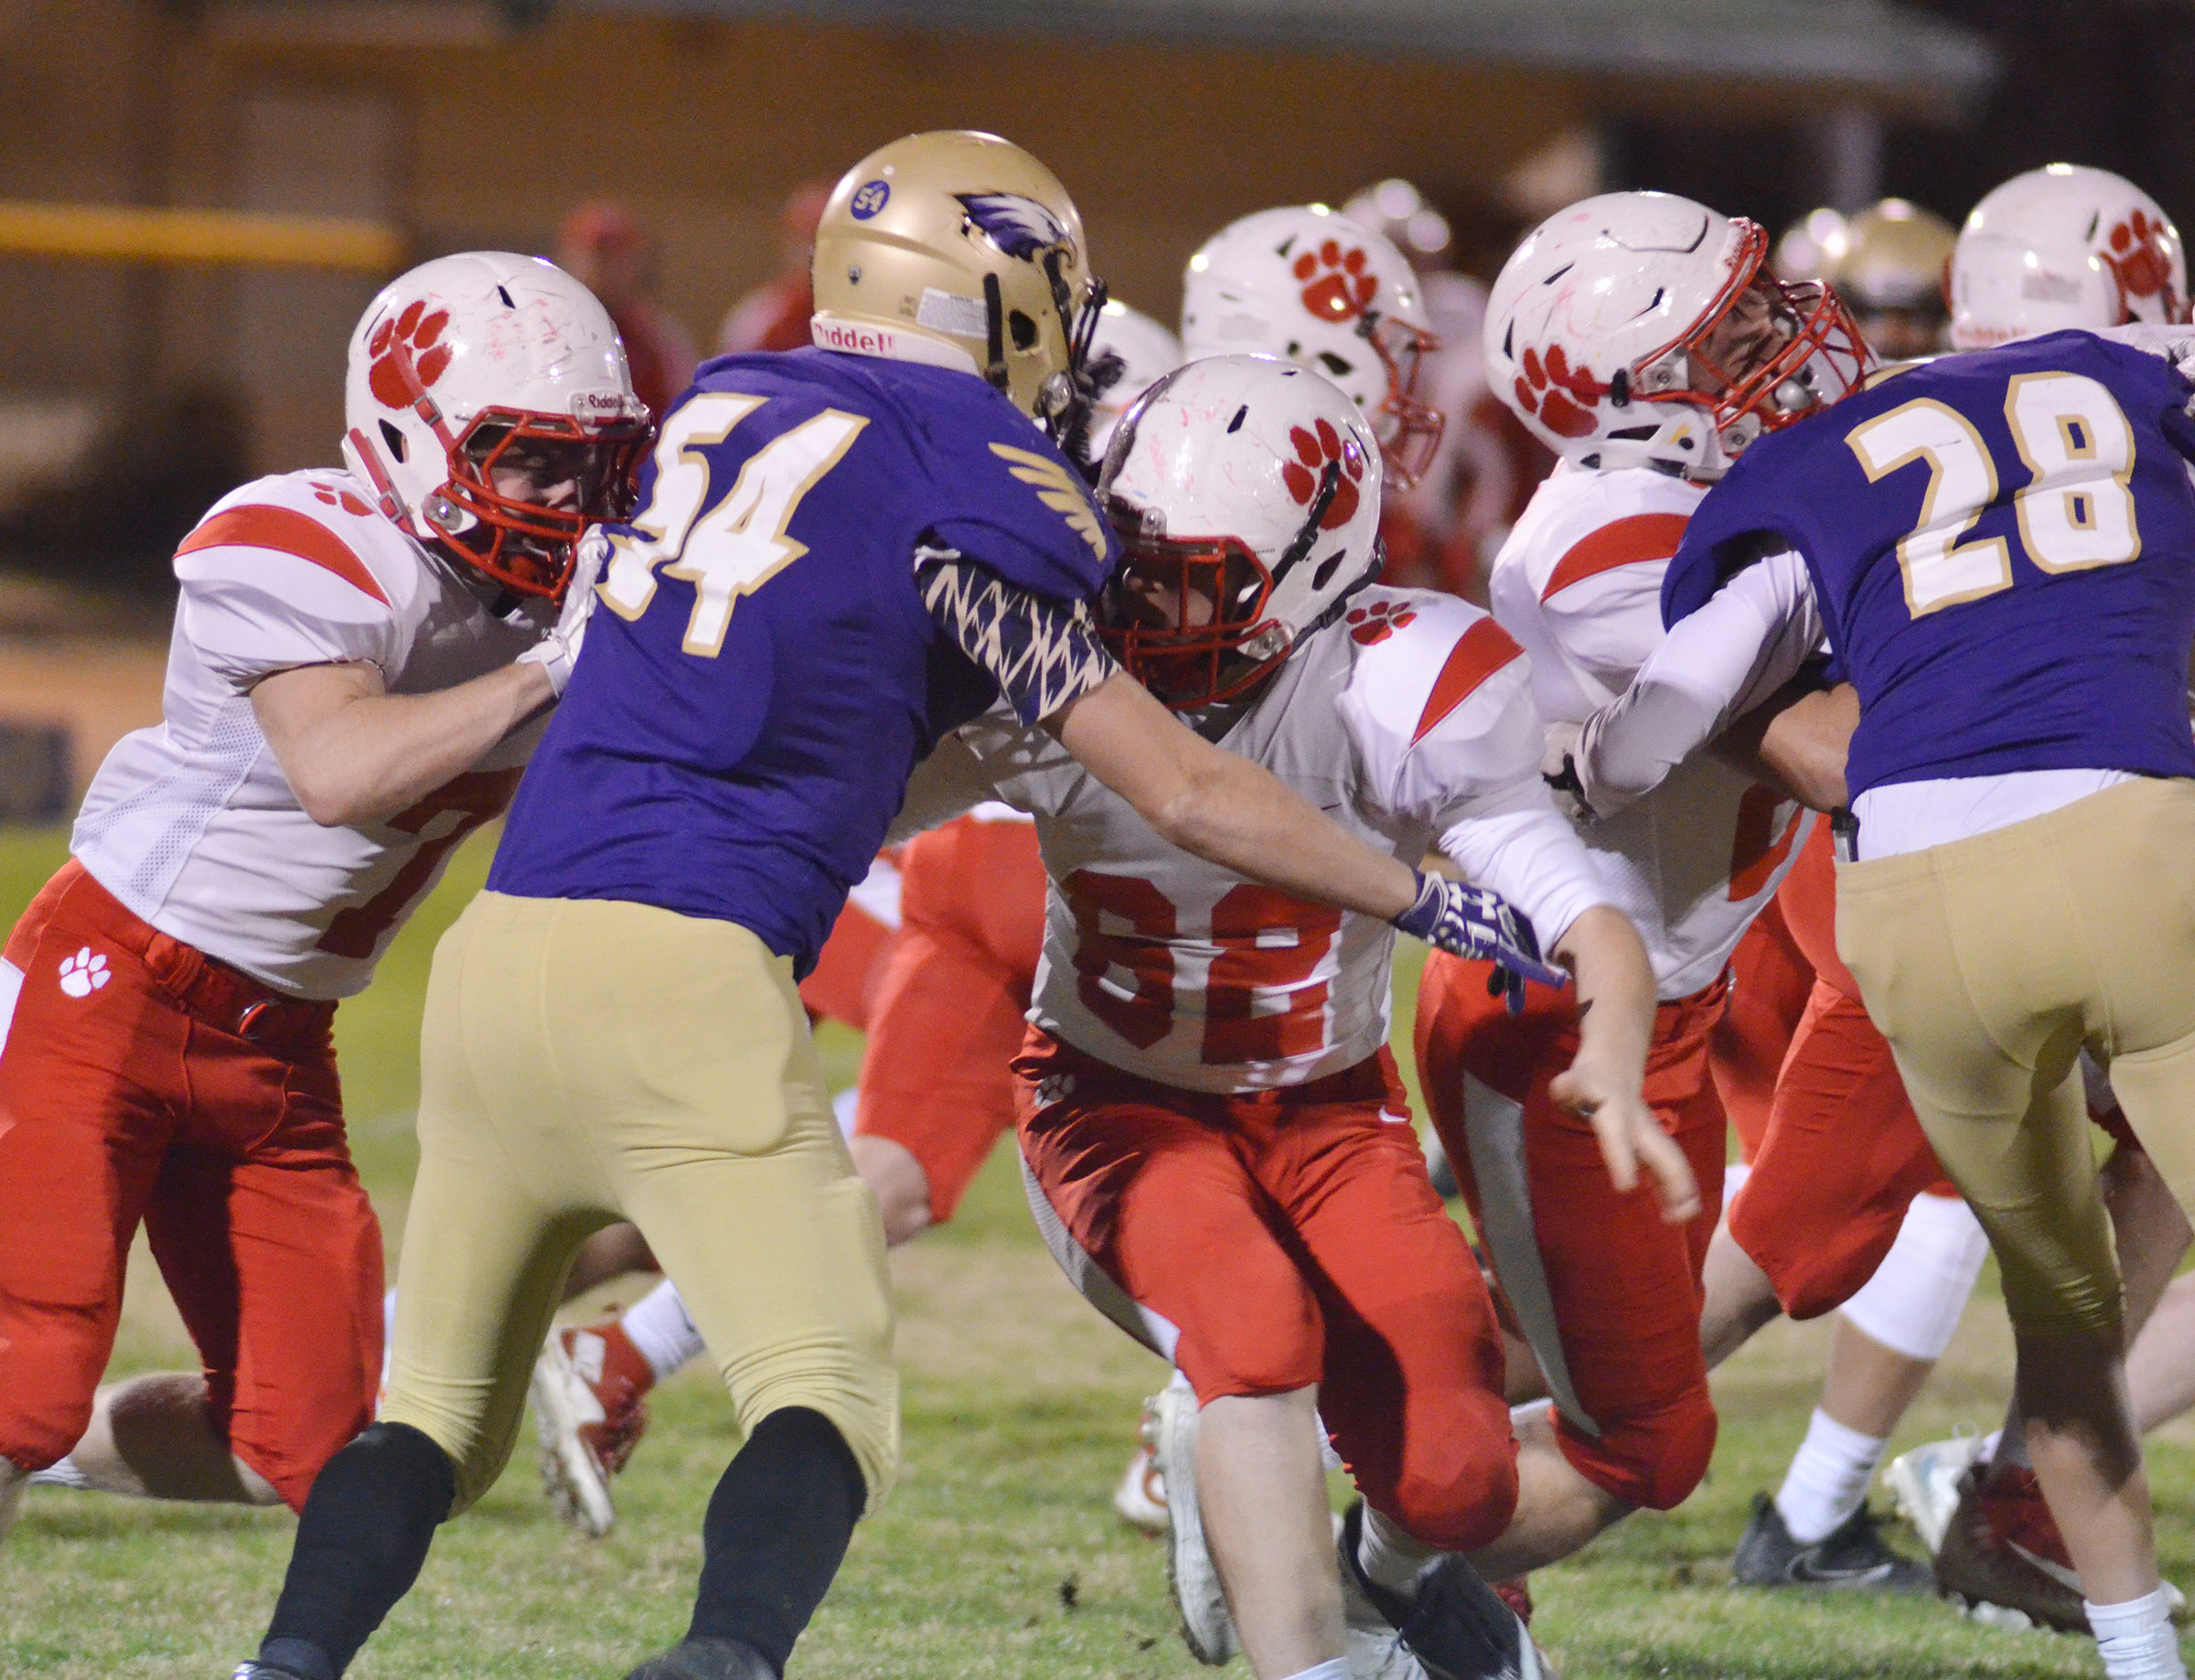 CHS sophomores Devon Reardon, at left, and Blake Allen tackle.